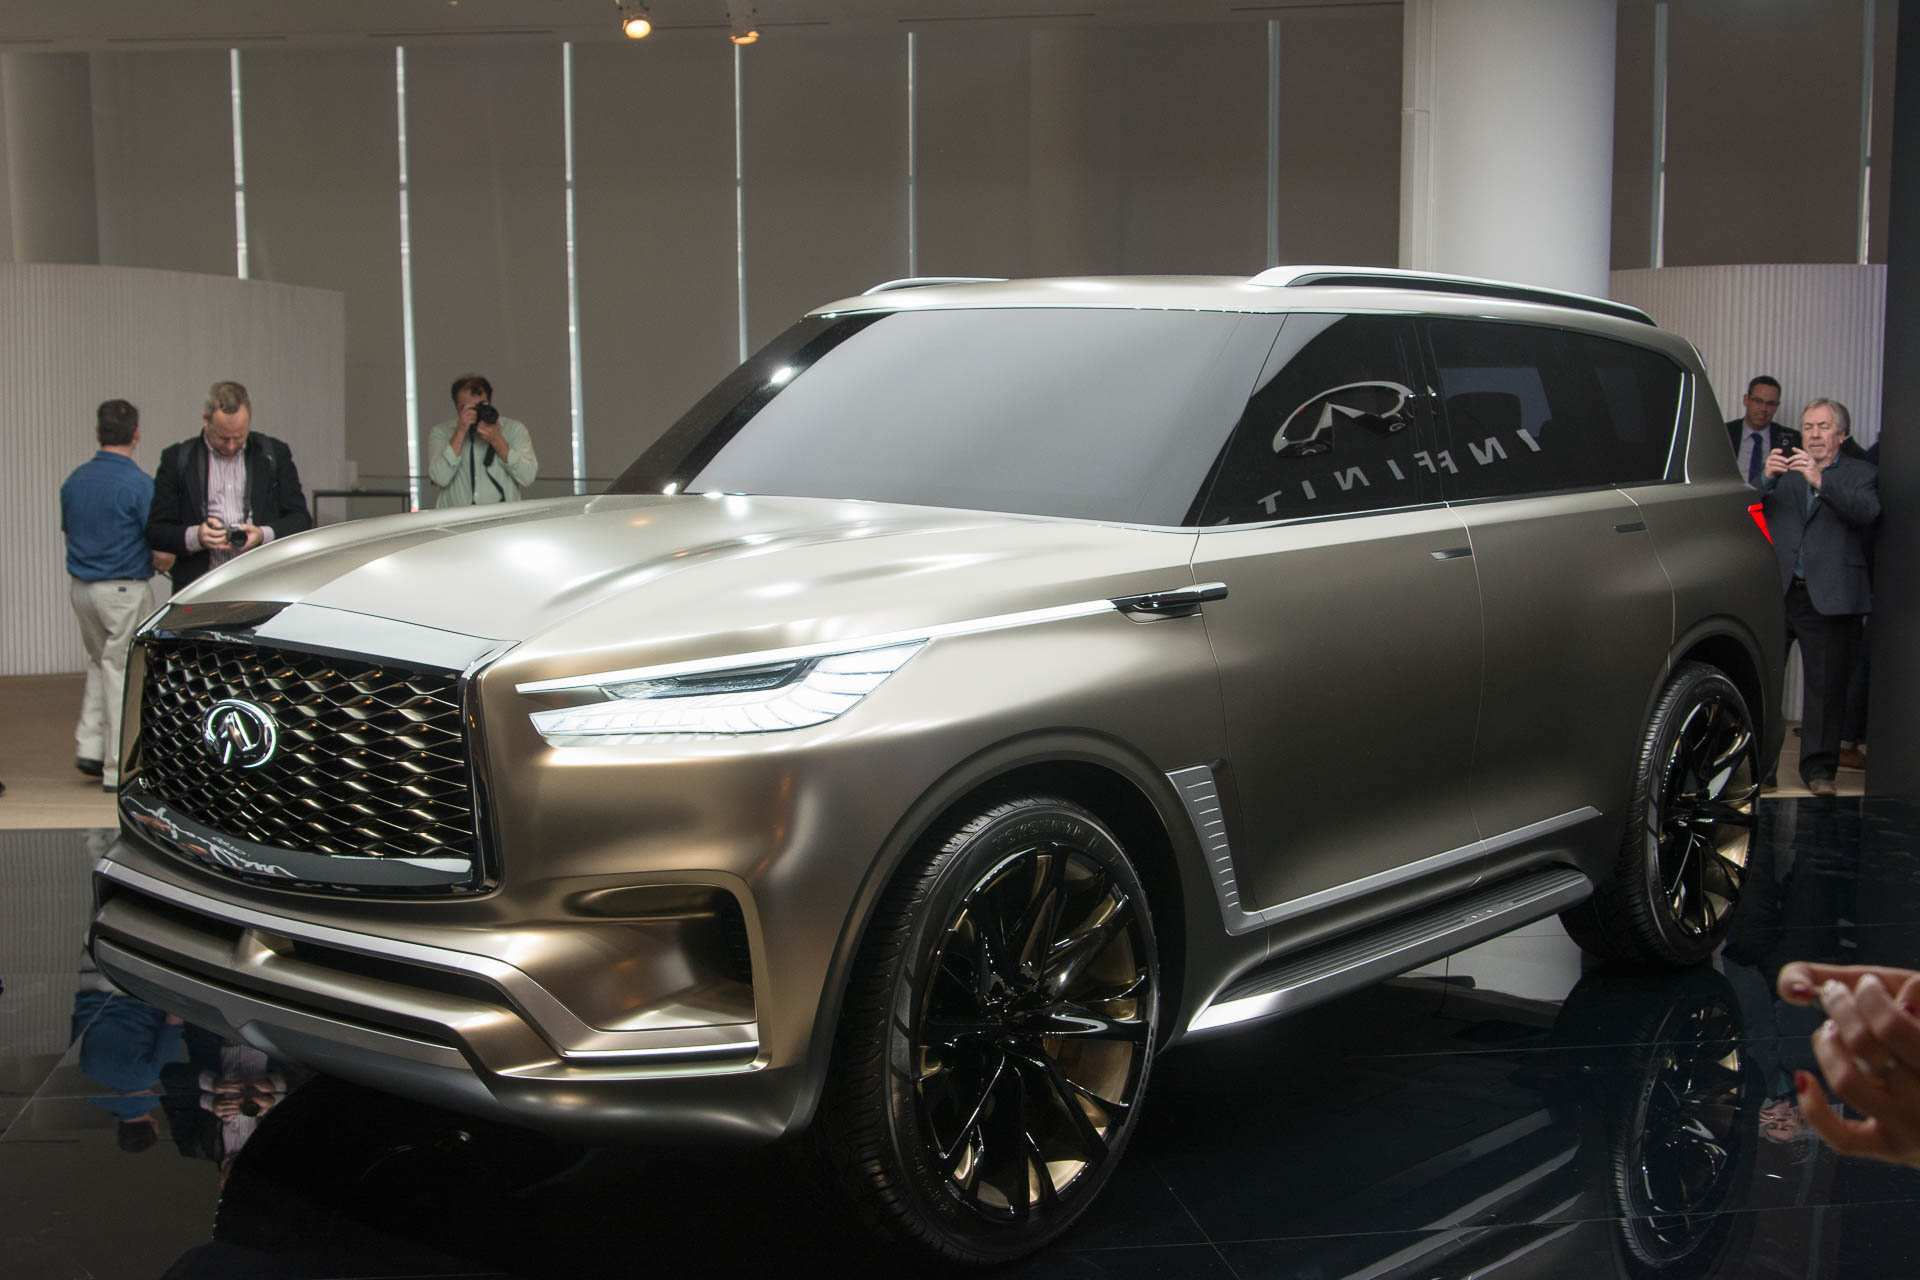 91 Best Review New Infiniti 2020 Research New by New Infiniti 2020